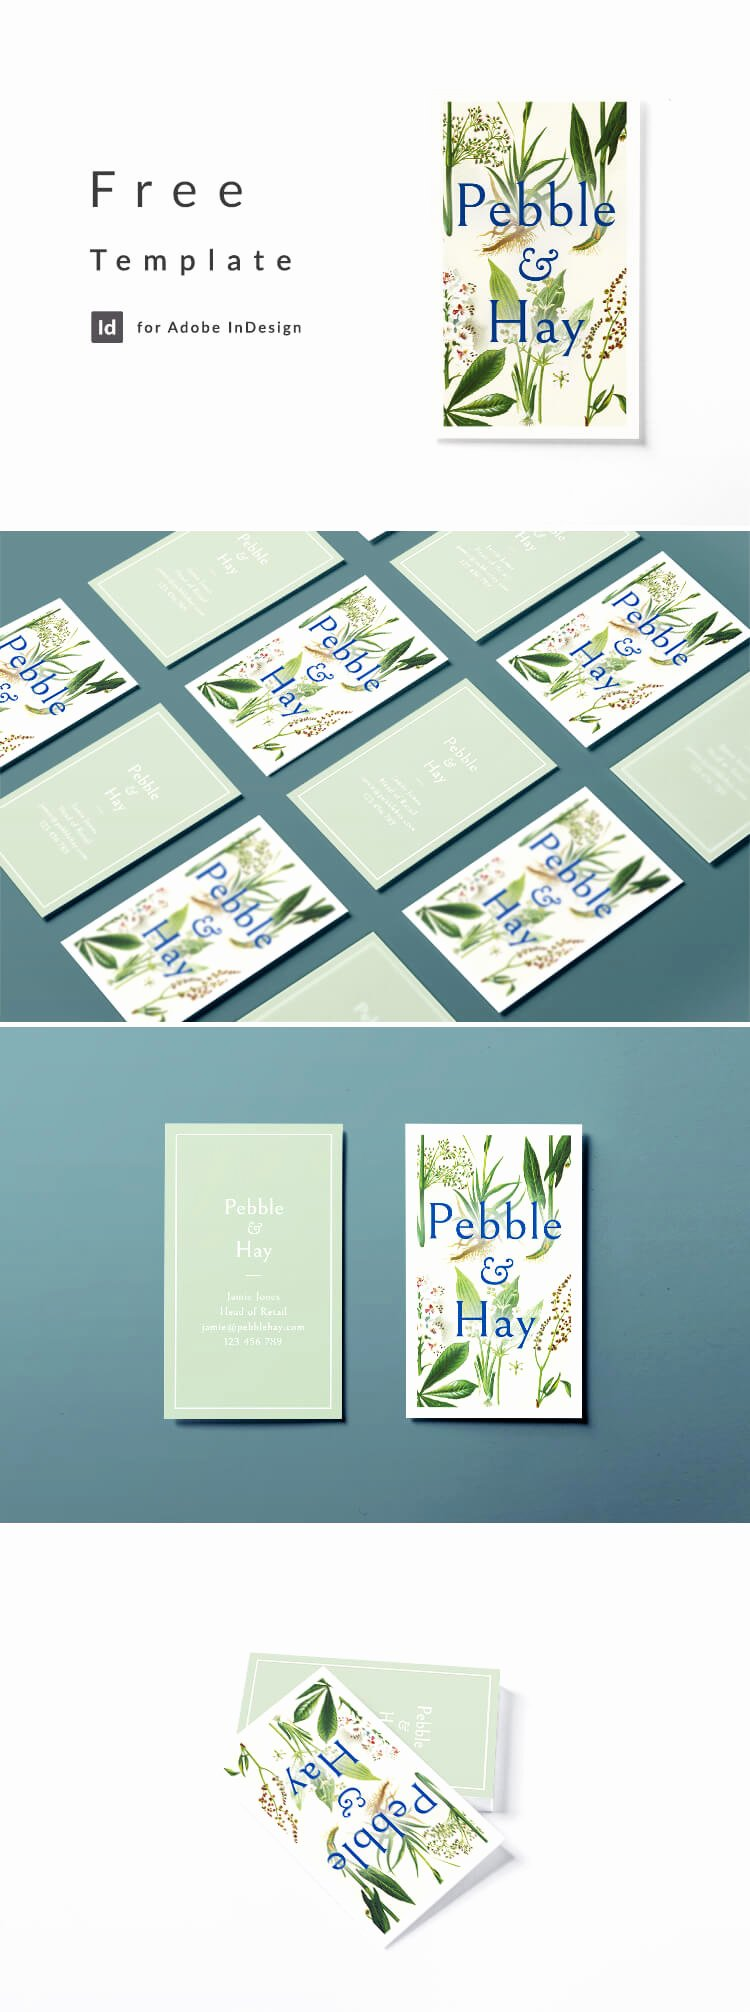 Indesign Business Card Template Free Awesome Vintage Business Card Template for Indesign